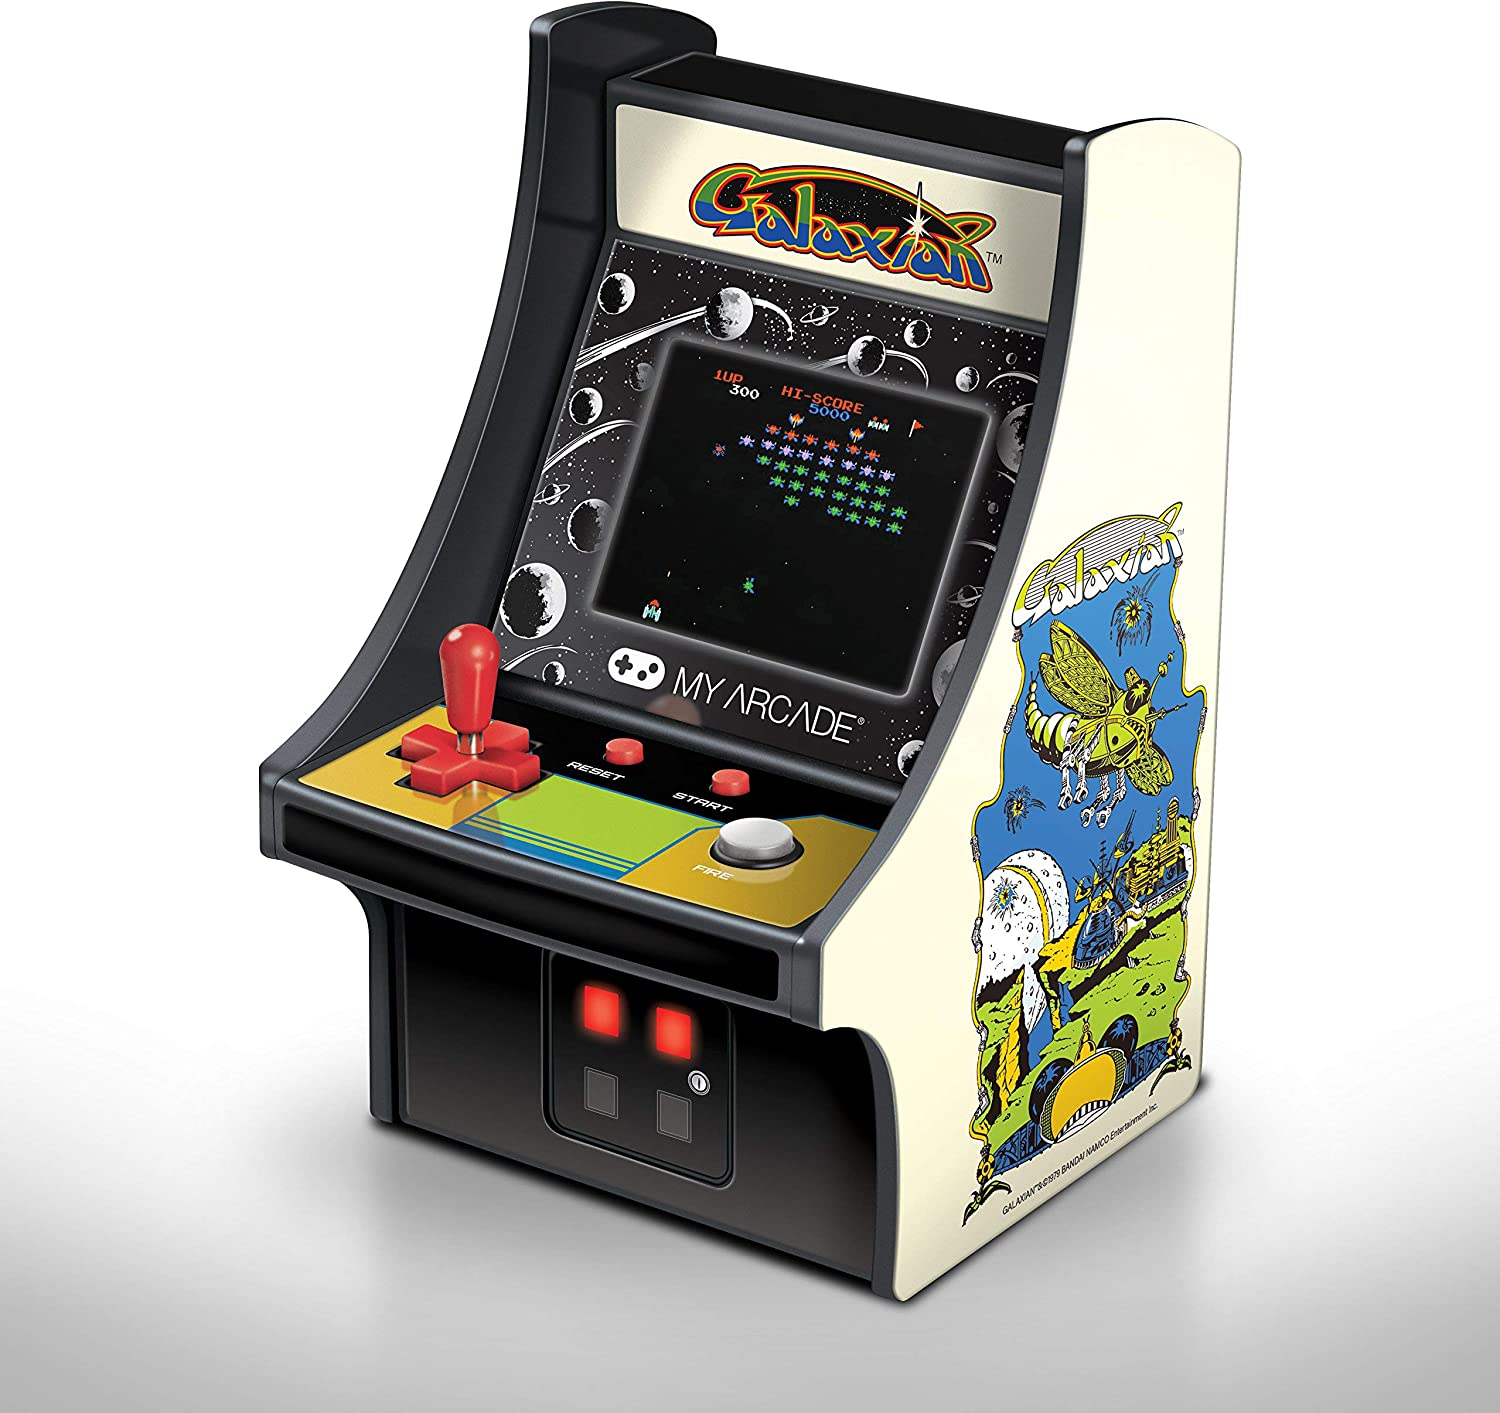 My Arcade Micro Player Mini Arcade Machine: Galaxian Video Game, Fully Playable, 6.75 Inch Collectible, Color Display, Speaker, Volume Buttons, Headphone Jack, Battery or Micro USB Powered